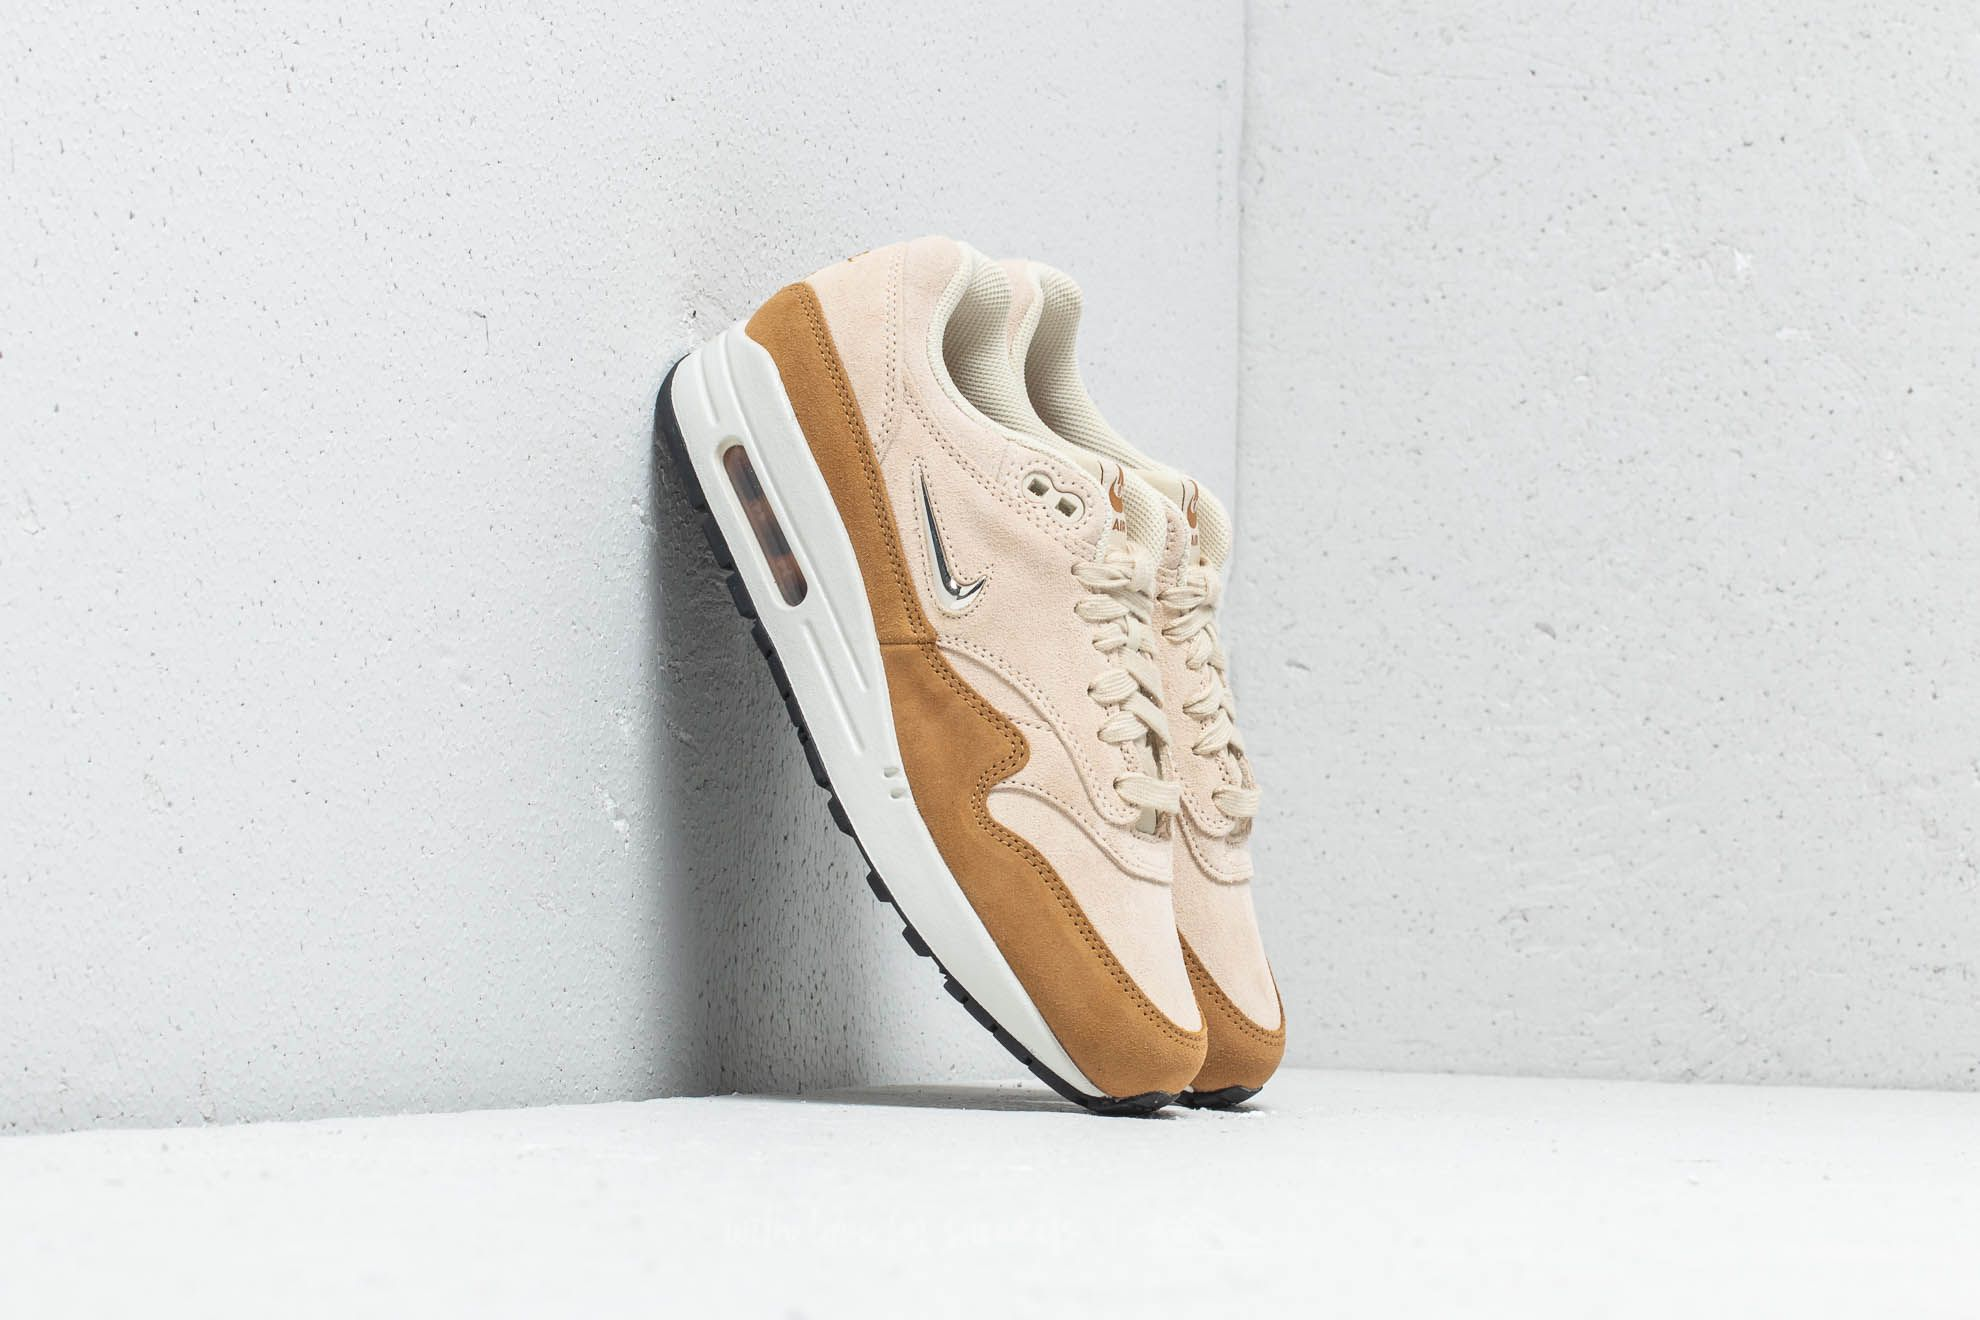 competitive price 8173f f5206 Nike Wmns Air Max 1 Premium SC Beach  Metallic Gold Grain at a great price